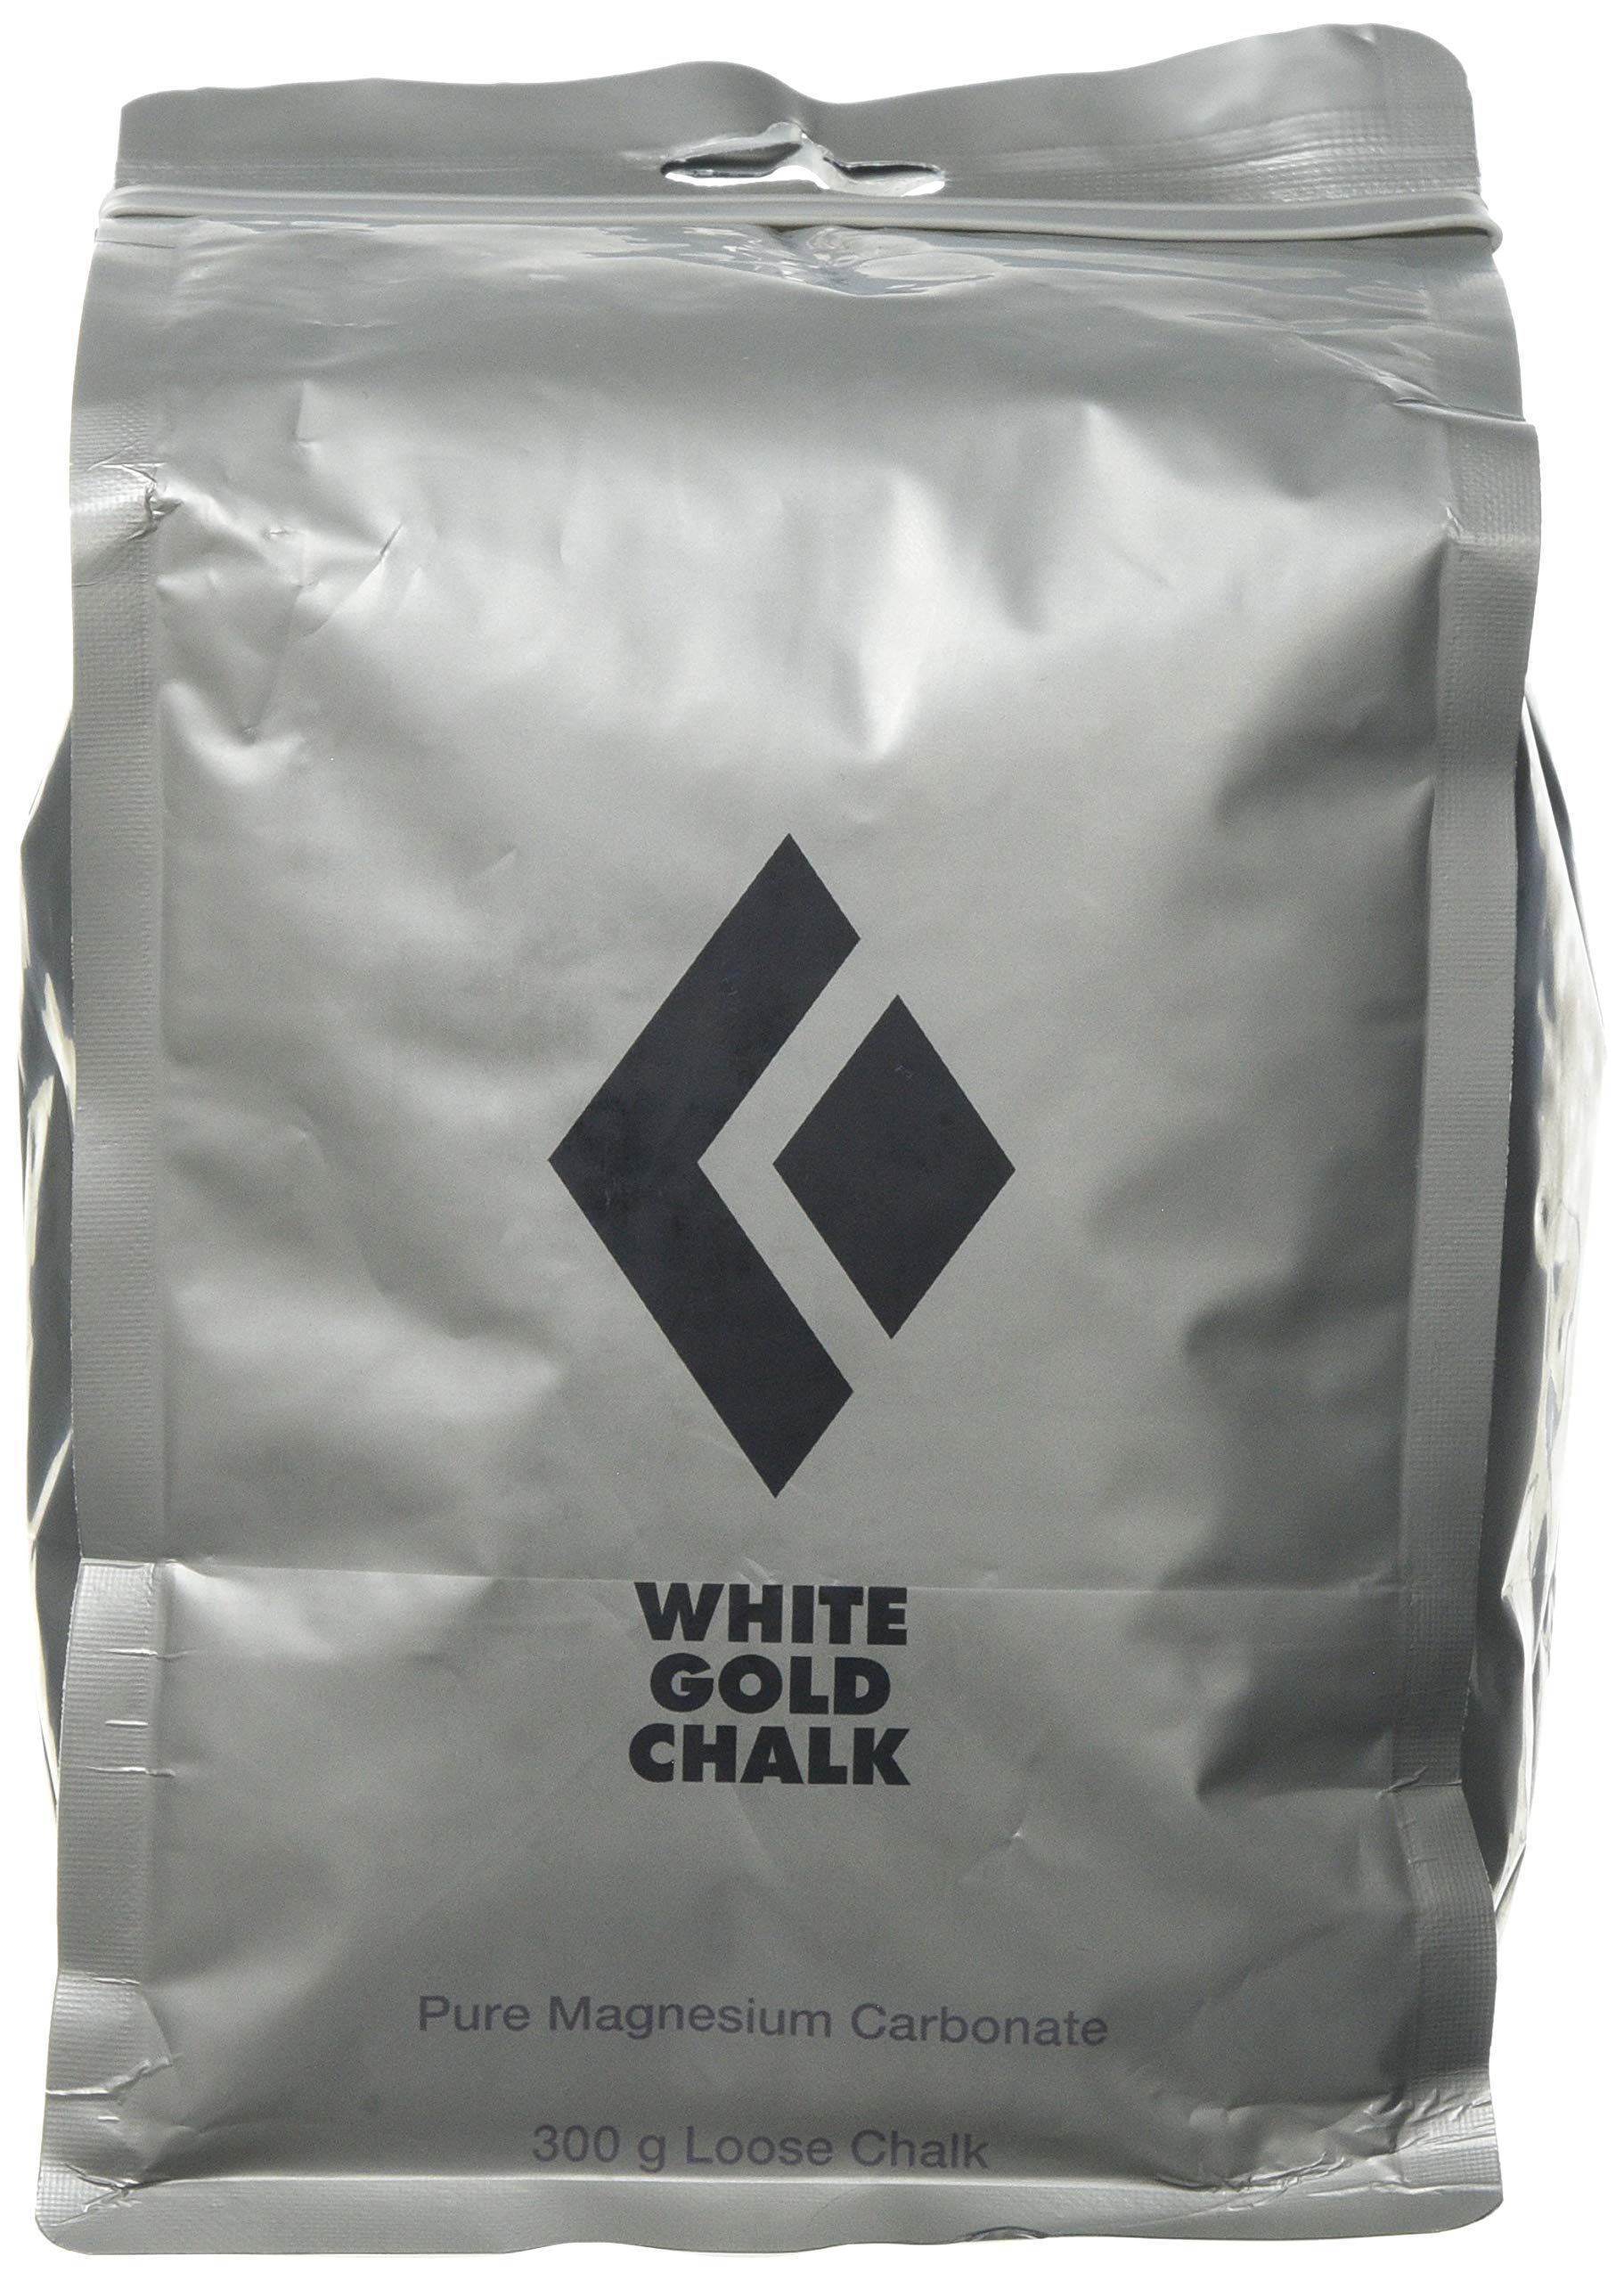 Black Diamond 300 g Loose Chalk, 300g, White by Black Diamond